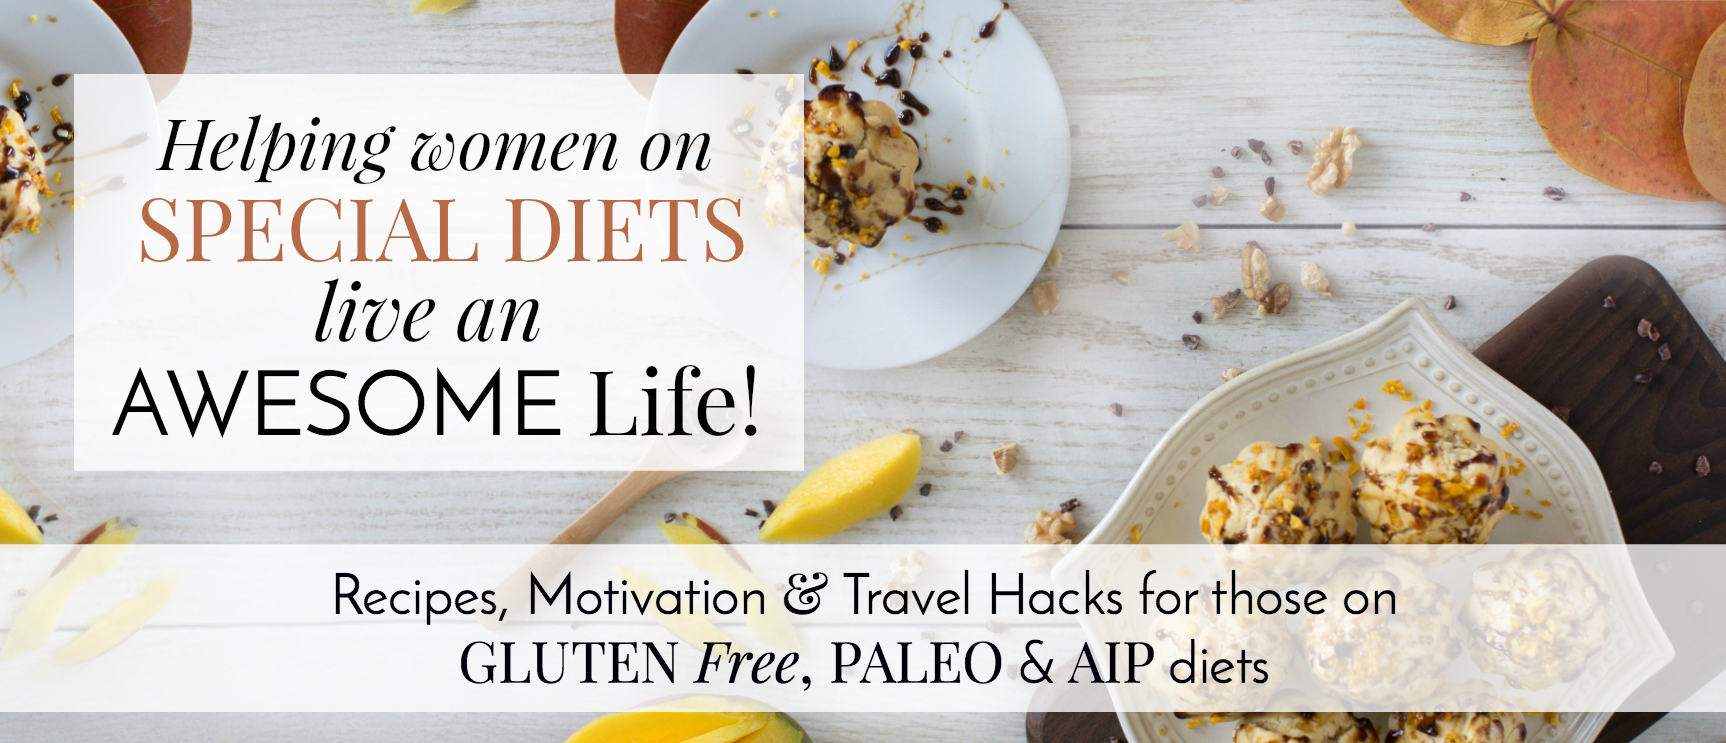 Helping Women on Special Diets Live an Awesome Life